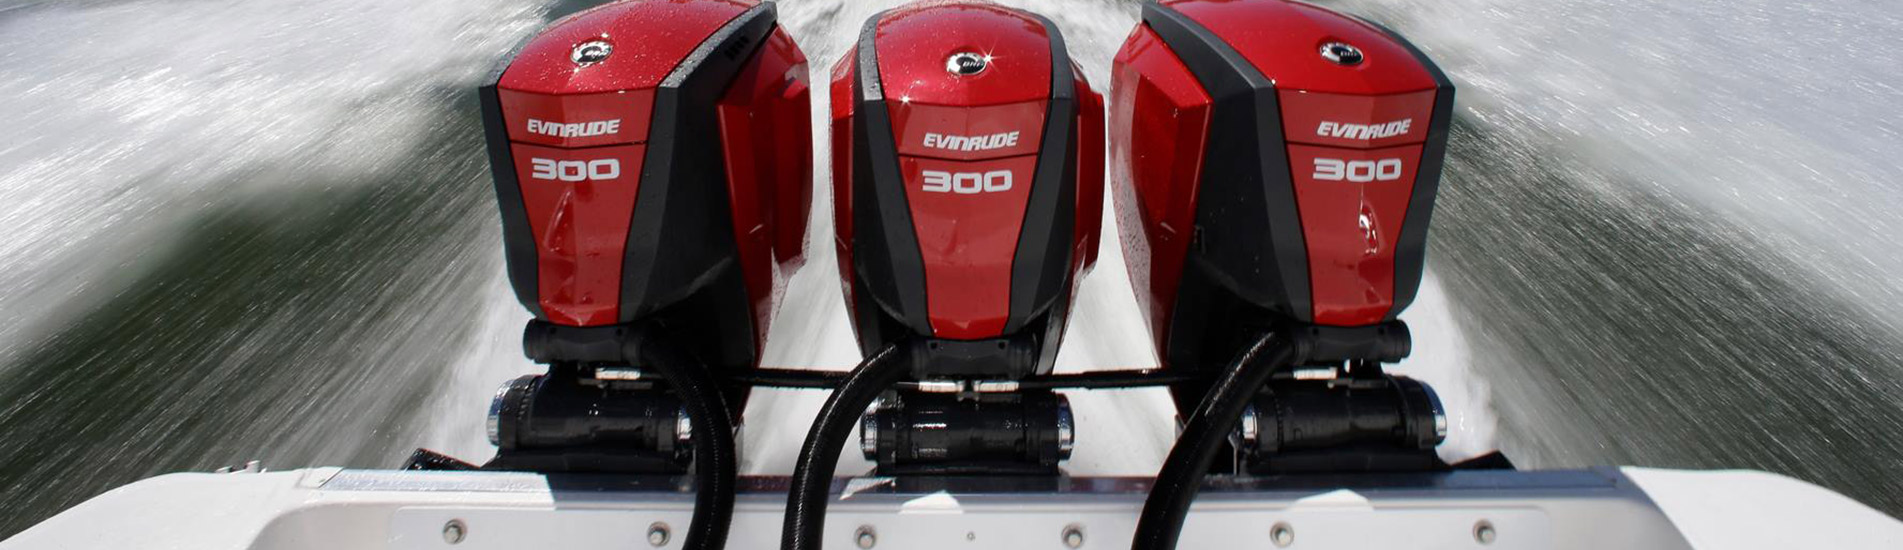 New & Used Outboard Engines for Sale in Pompano Beach, FL